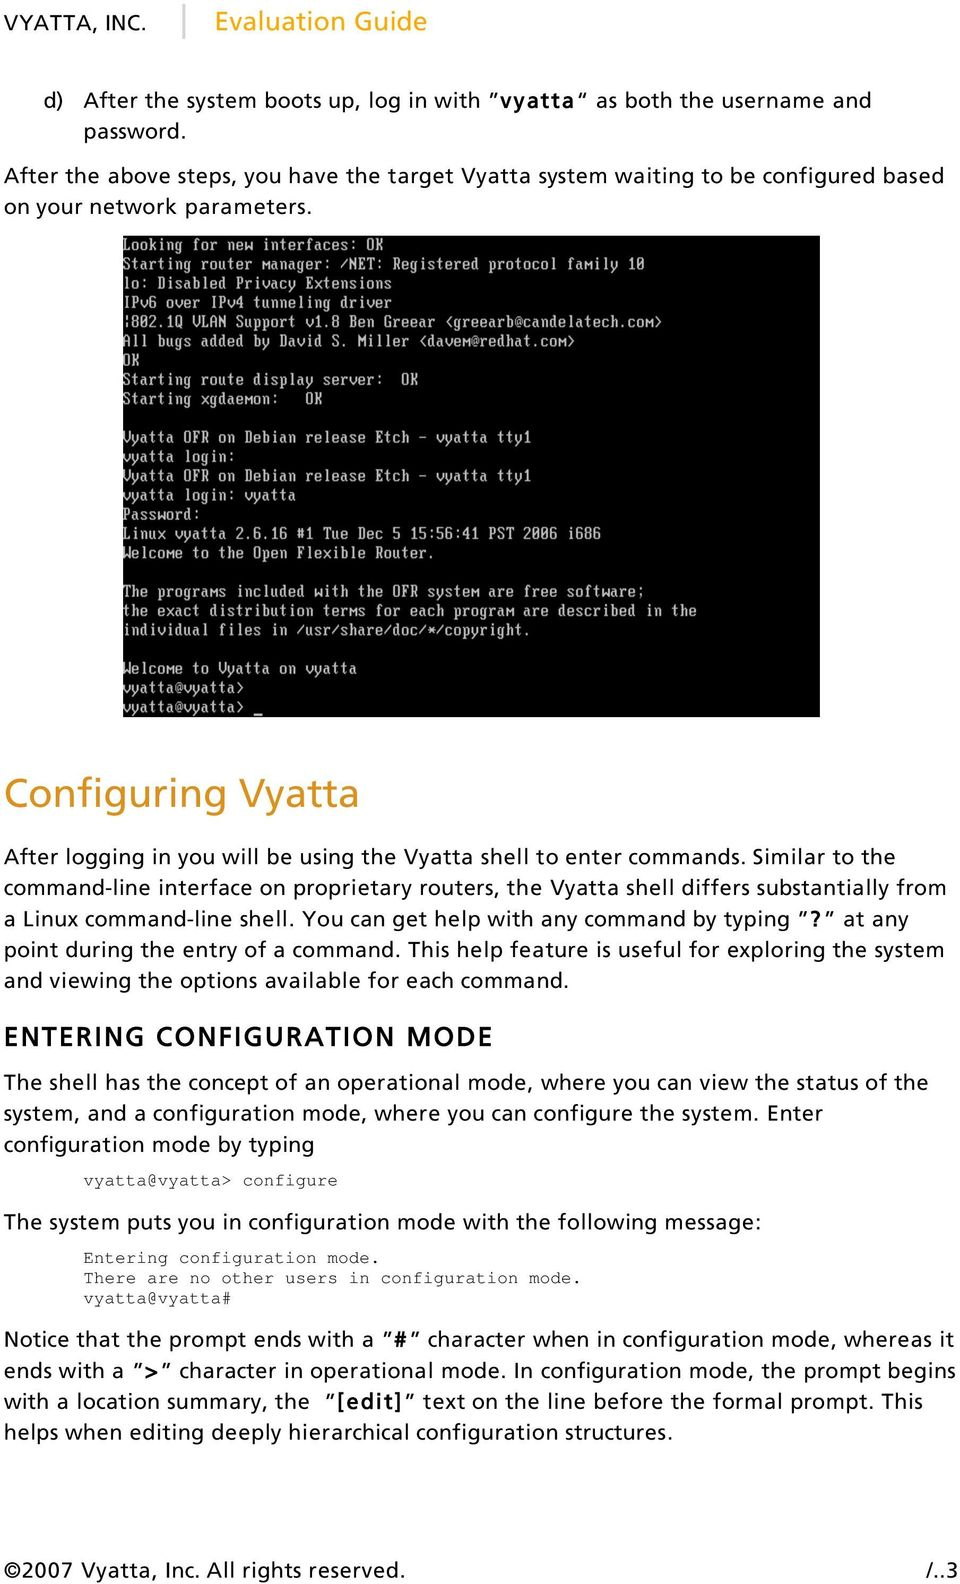 Similar to the command-line interface on proprietary routers, the Vyatta shell differs substantially from a Linux command-line shell. You can get help with any command by typing?